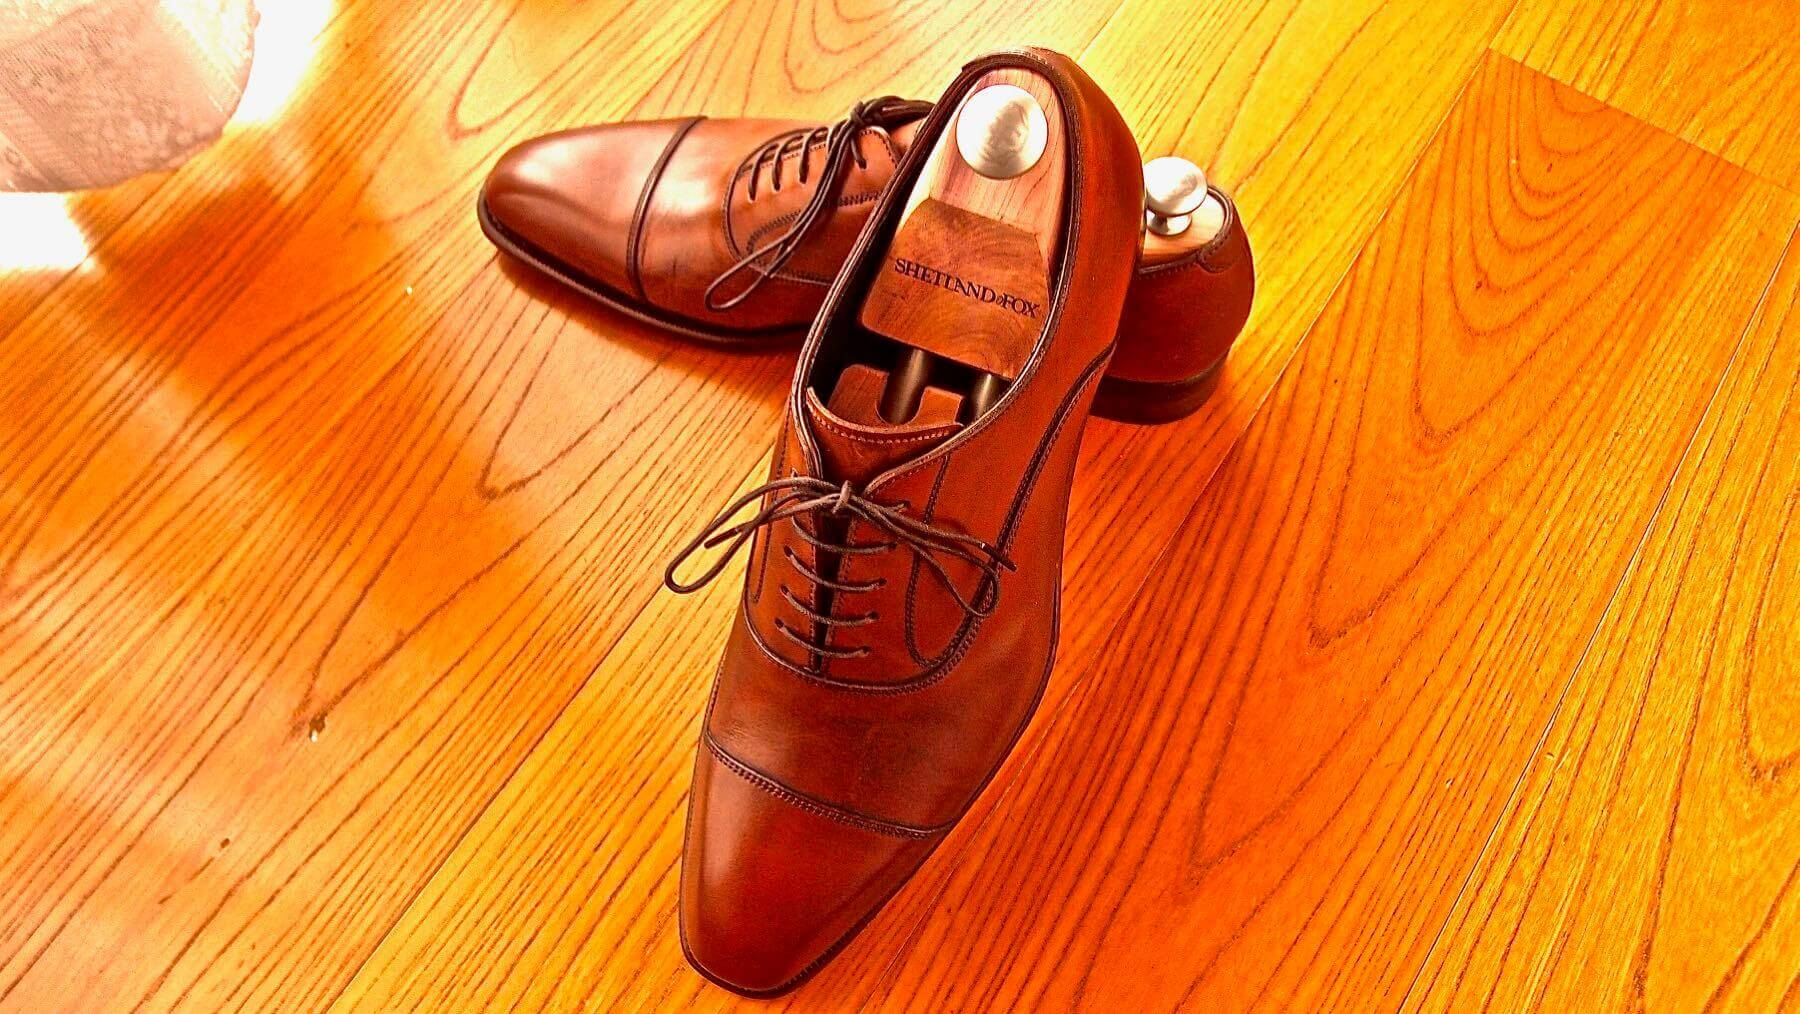 16 Shetlandfox Glasgow Leather shoes care